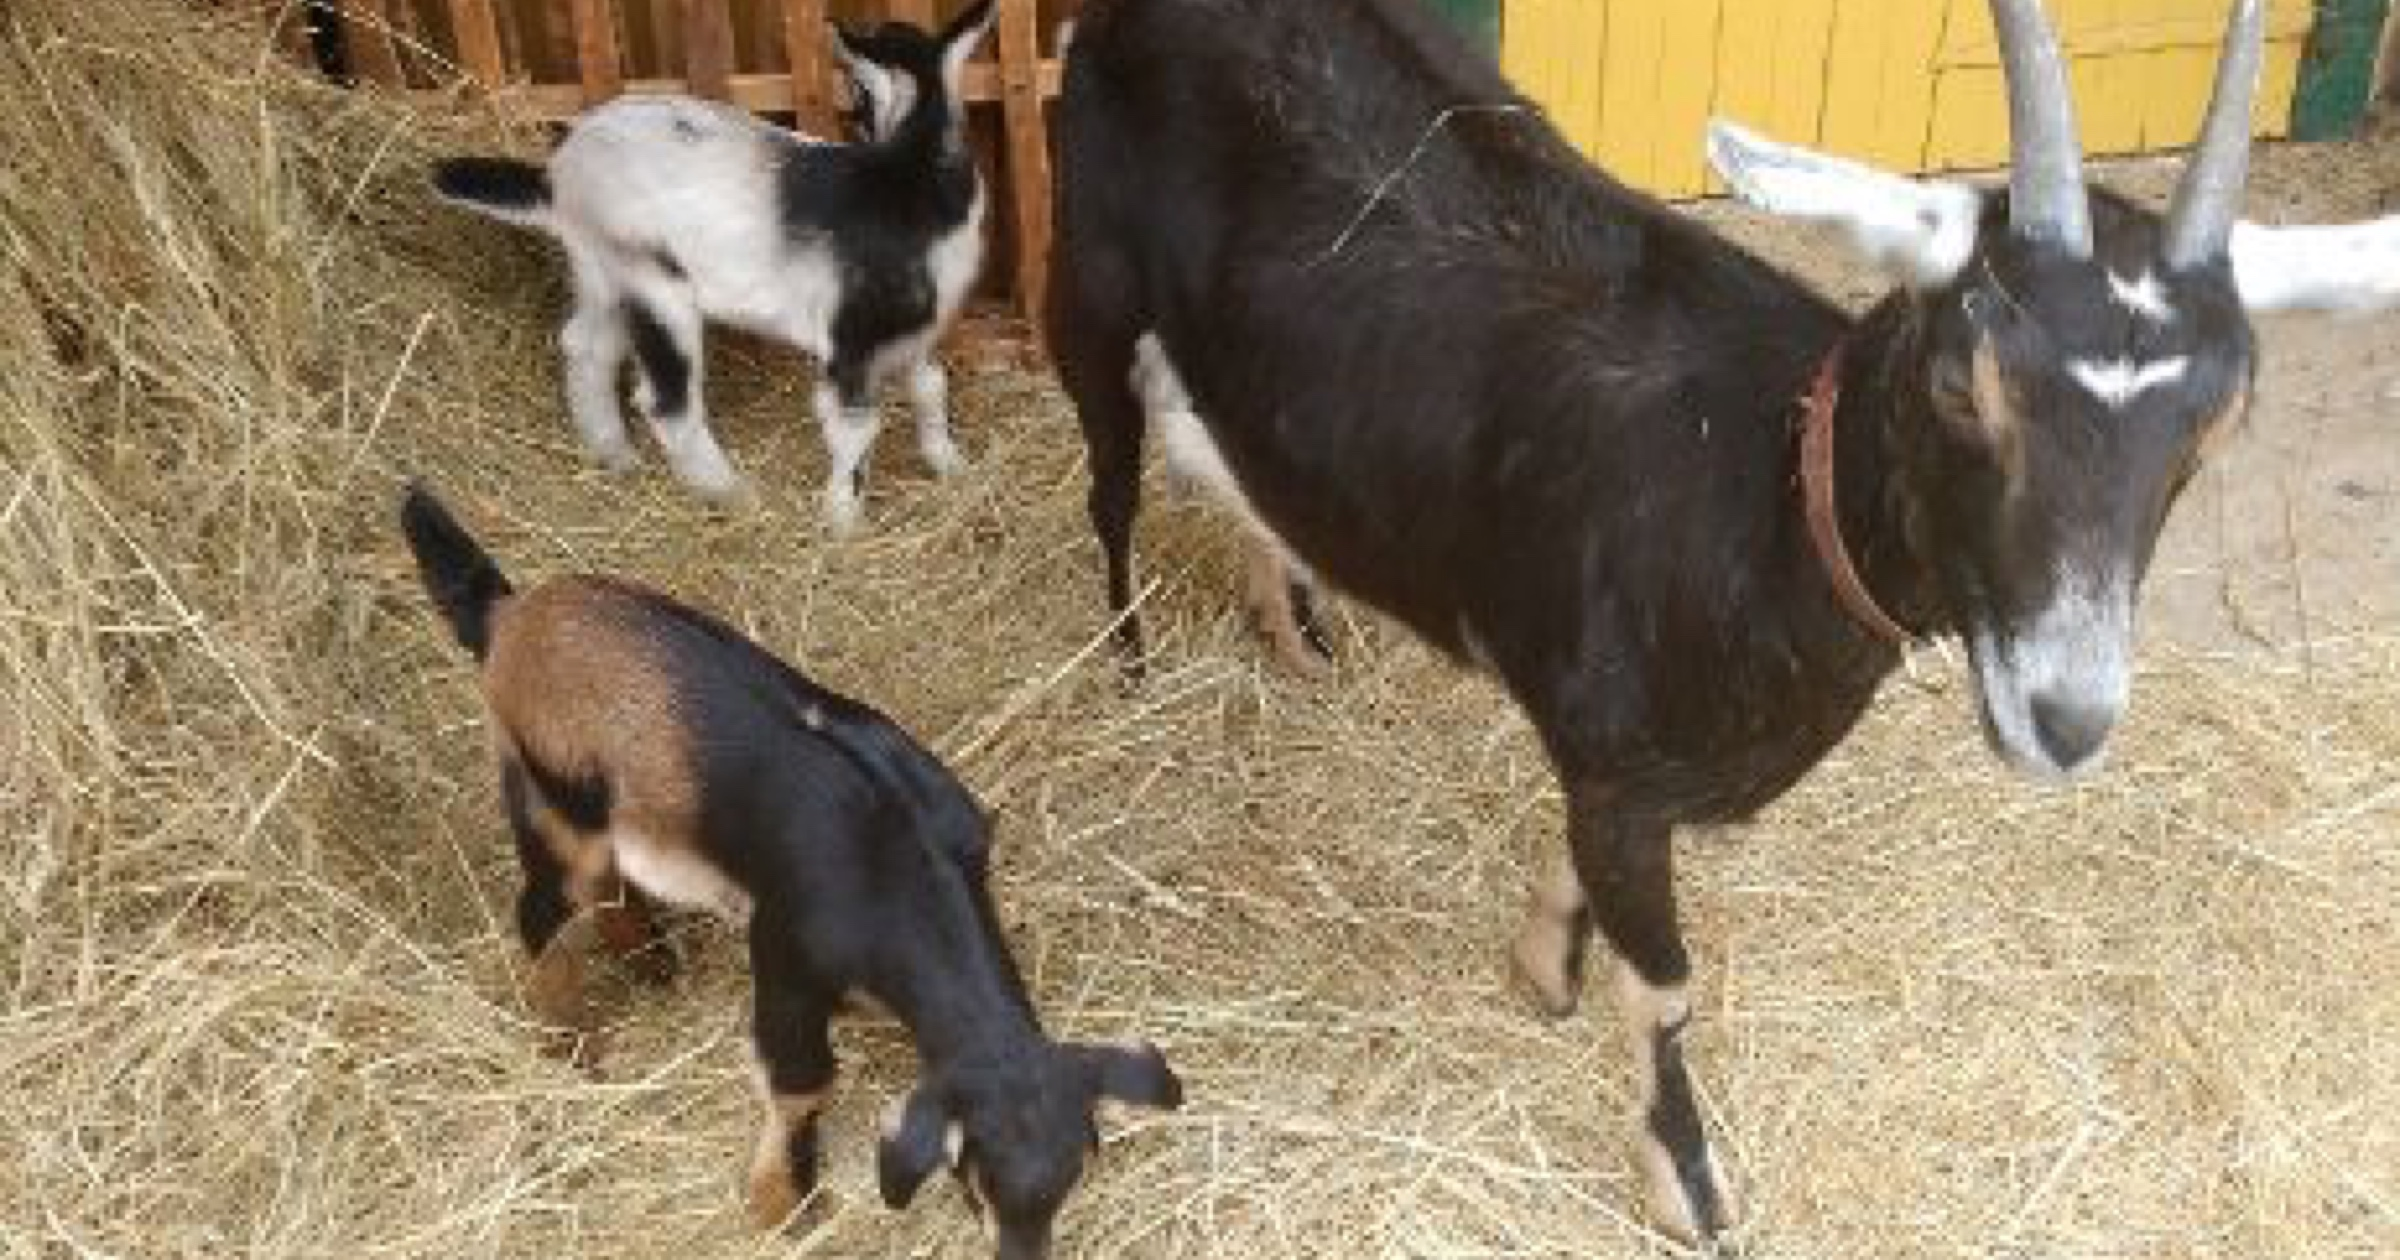 Help out at Schaeffer Farm this weekend and you'll see their new goats